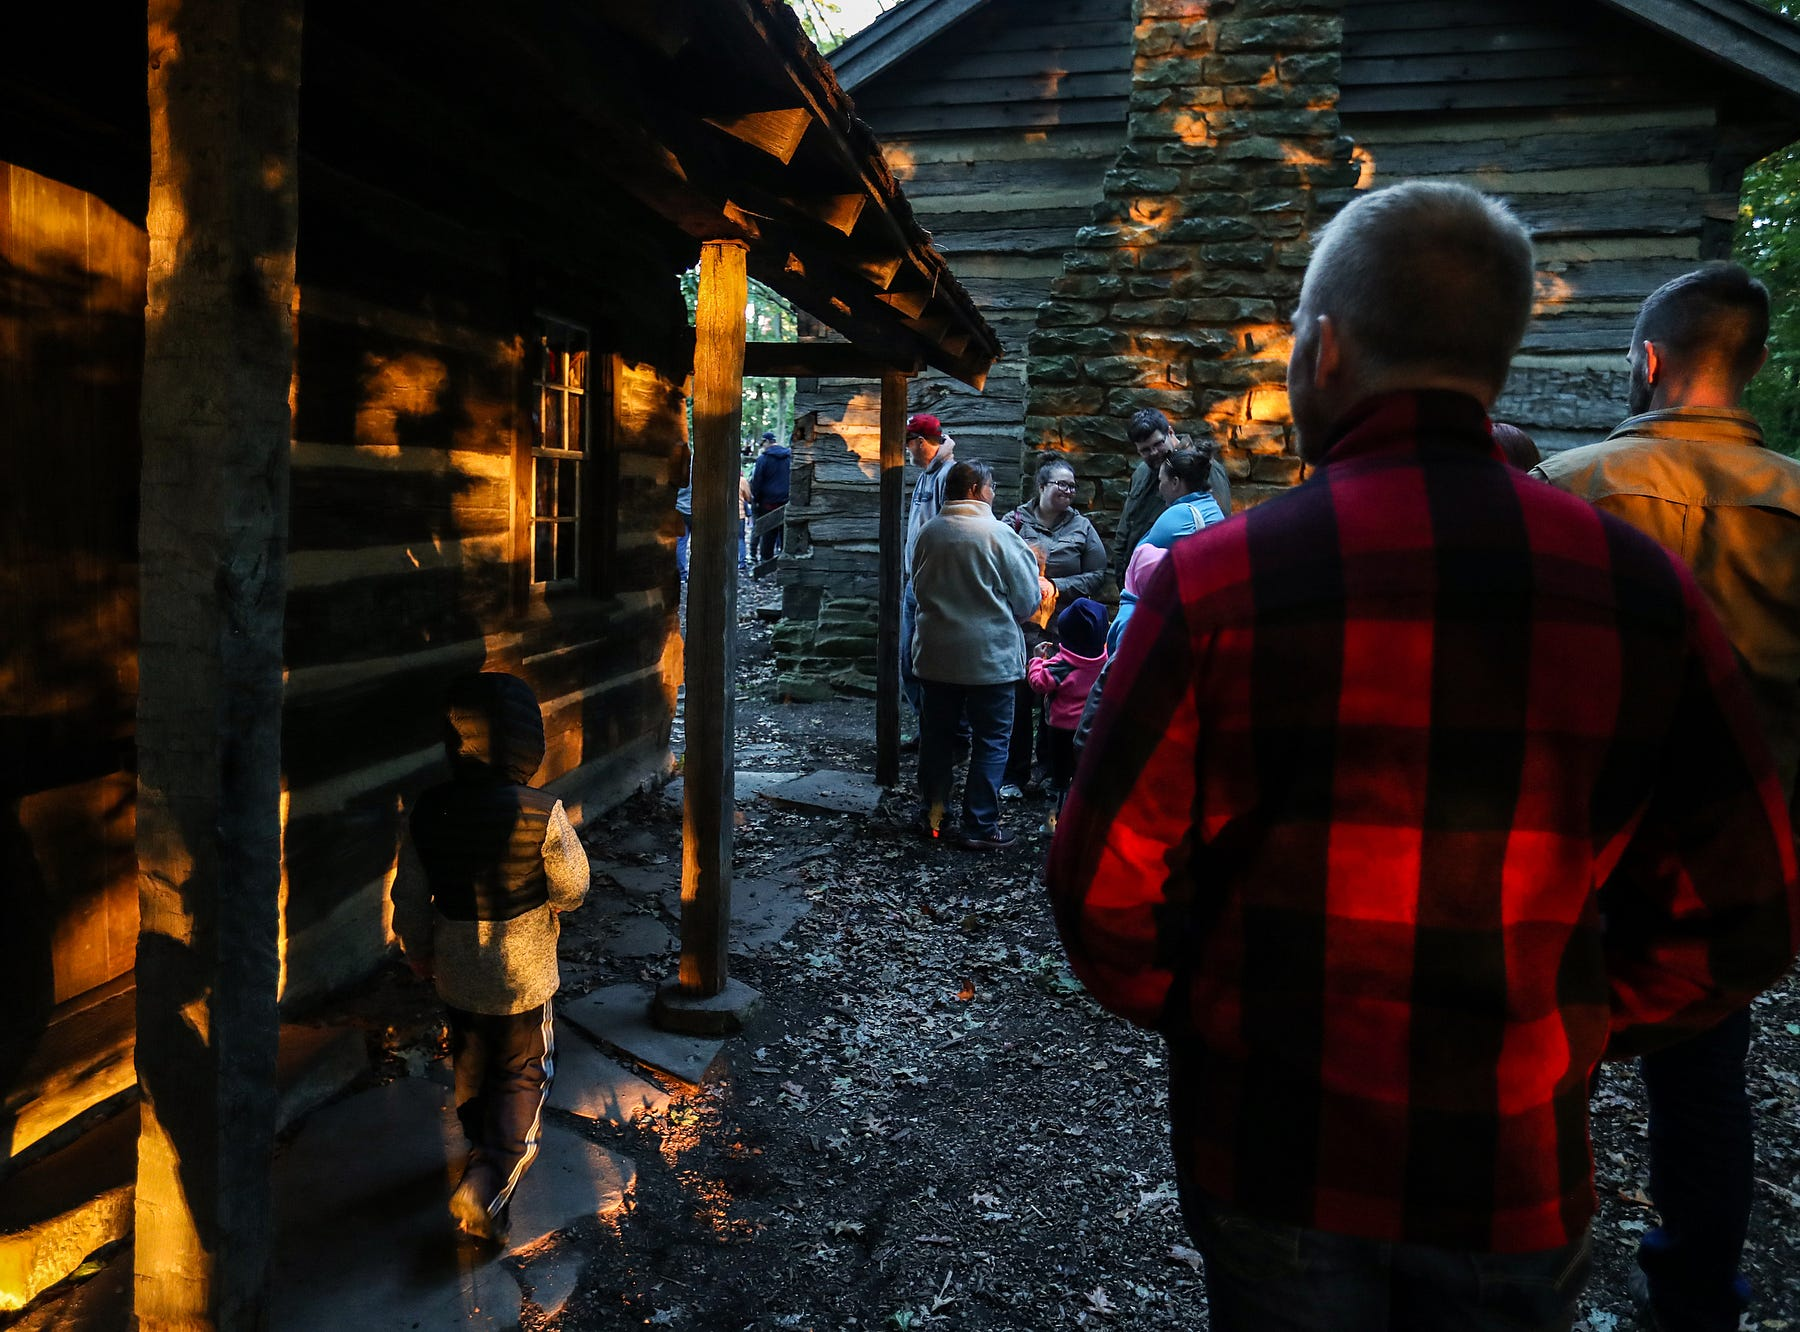 Guests wait in line for the haunted hayride attraction on opening night of the annual Headless Horseman Halloween festival at Conner Prairie in Fishers, Ind., Thursday, Oct. 11, 2018. The festival is held from 6 to 9 p.m. every Thursday through Sunday, ending Oct. 28, 2018.